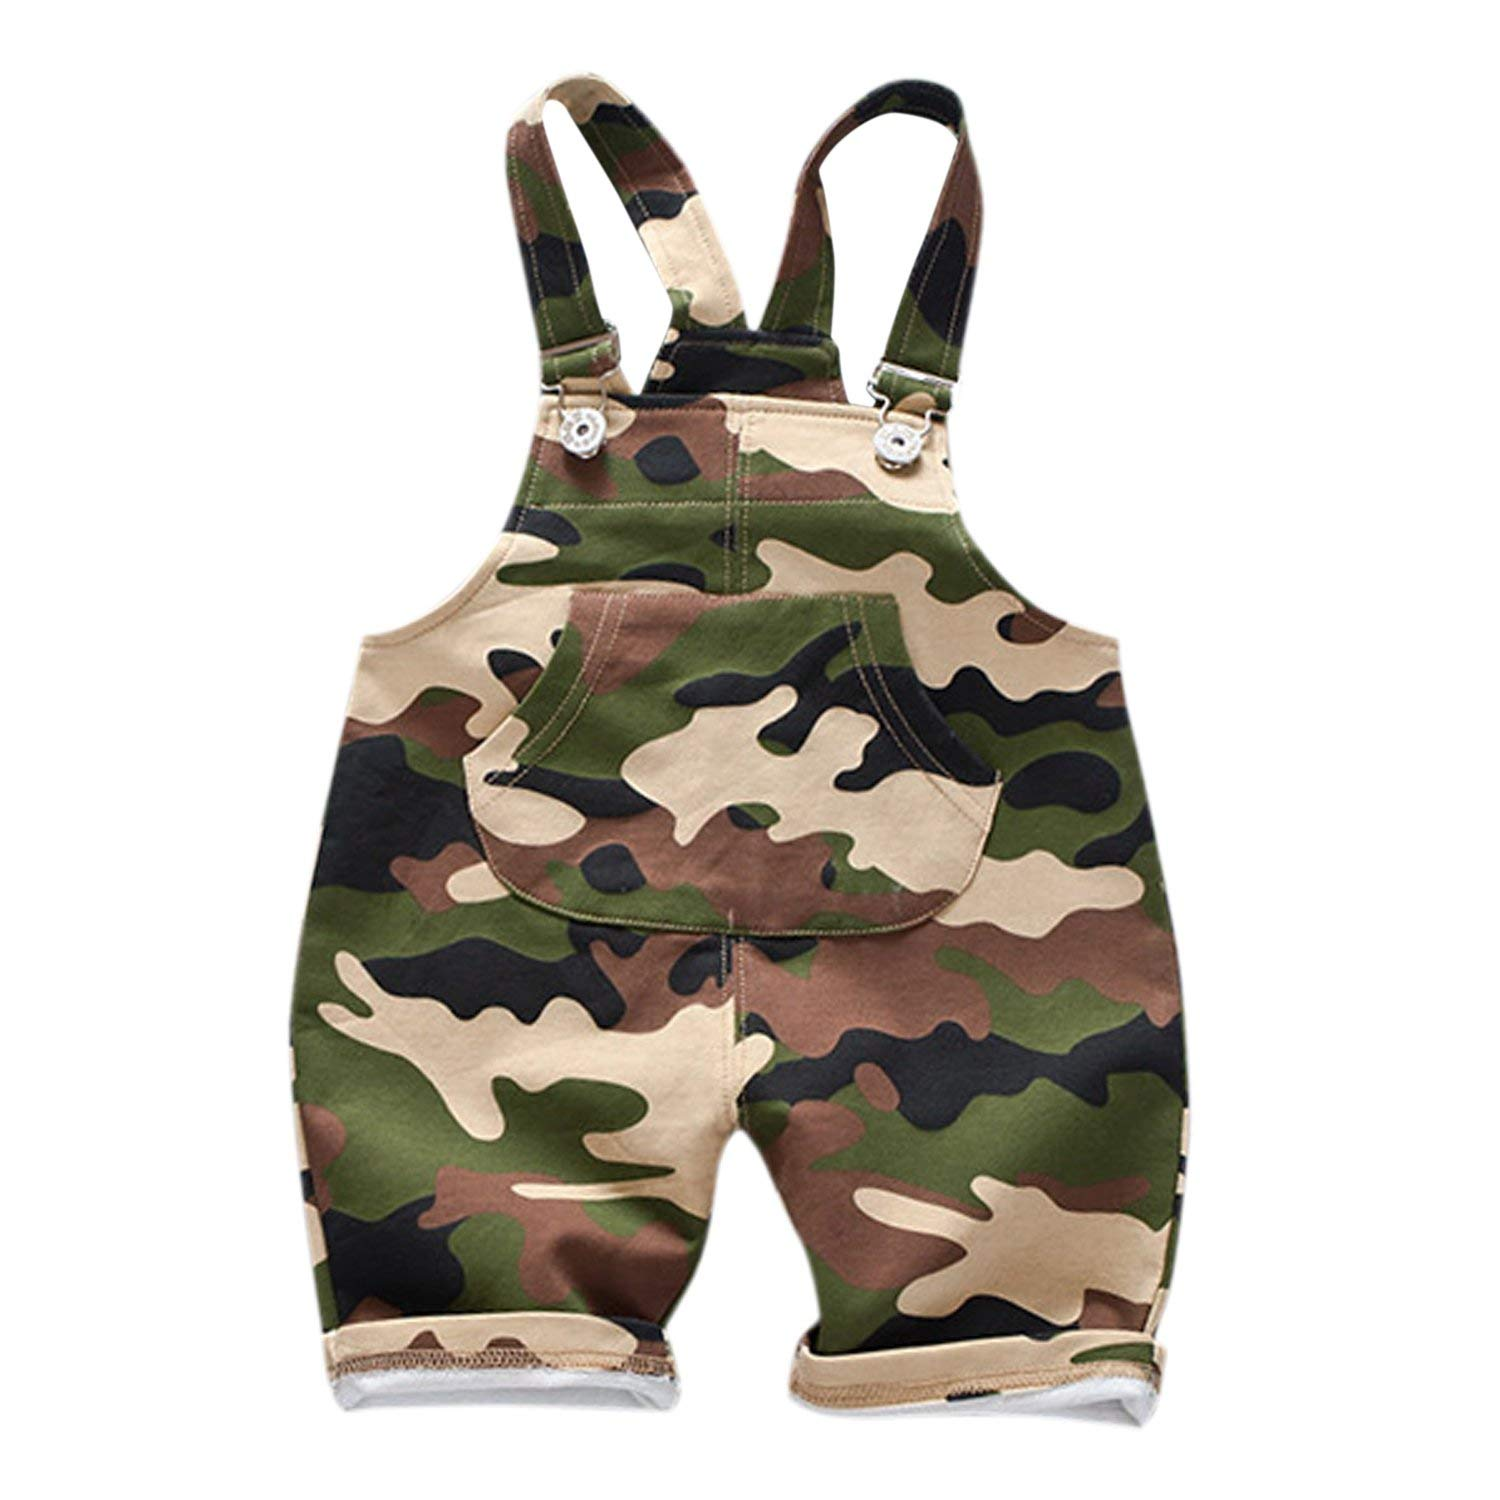 992897c6c0e10 Get Quotations · Evelin LEE Baby Boys Cute Camo Bib Pants Sleeveless Romper  Jumpsuits Overalls